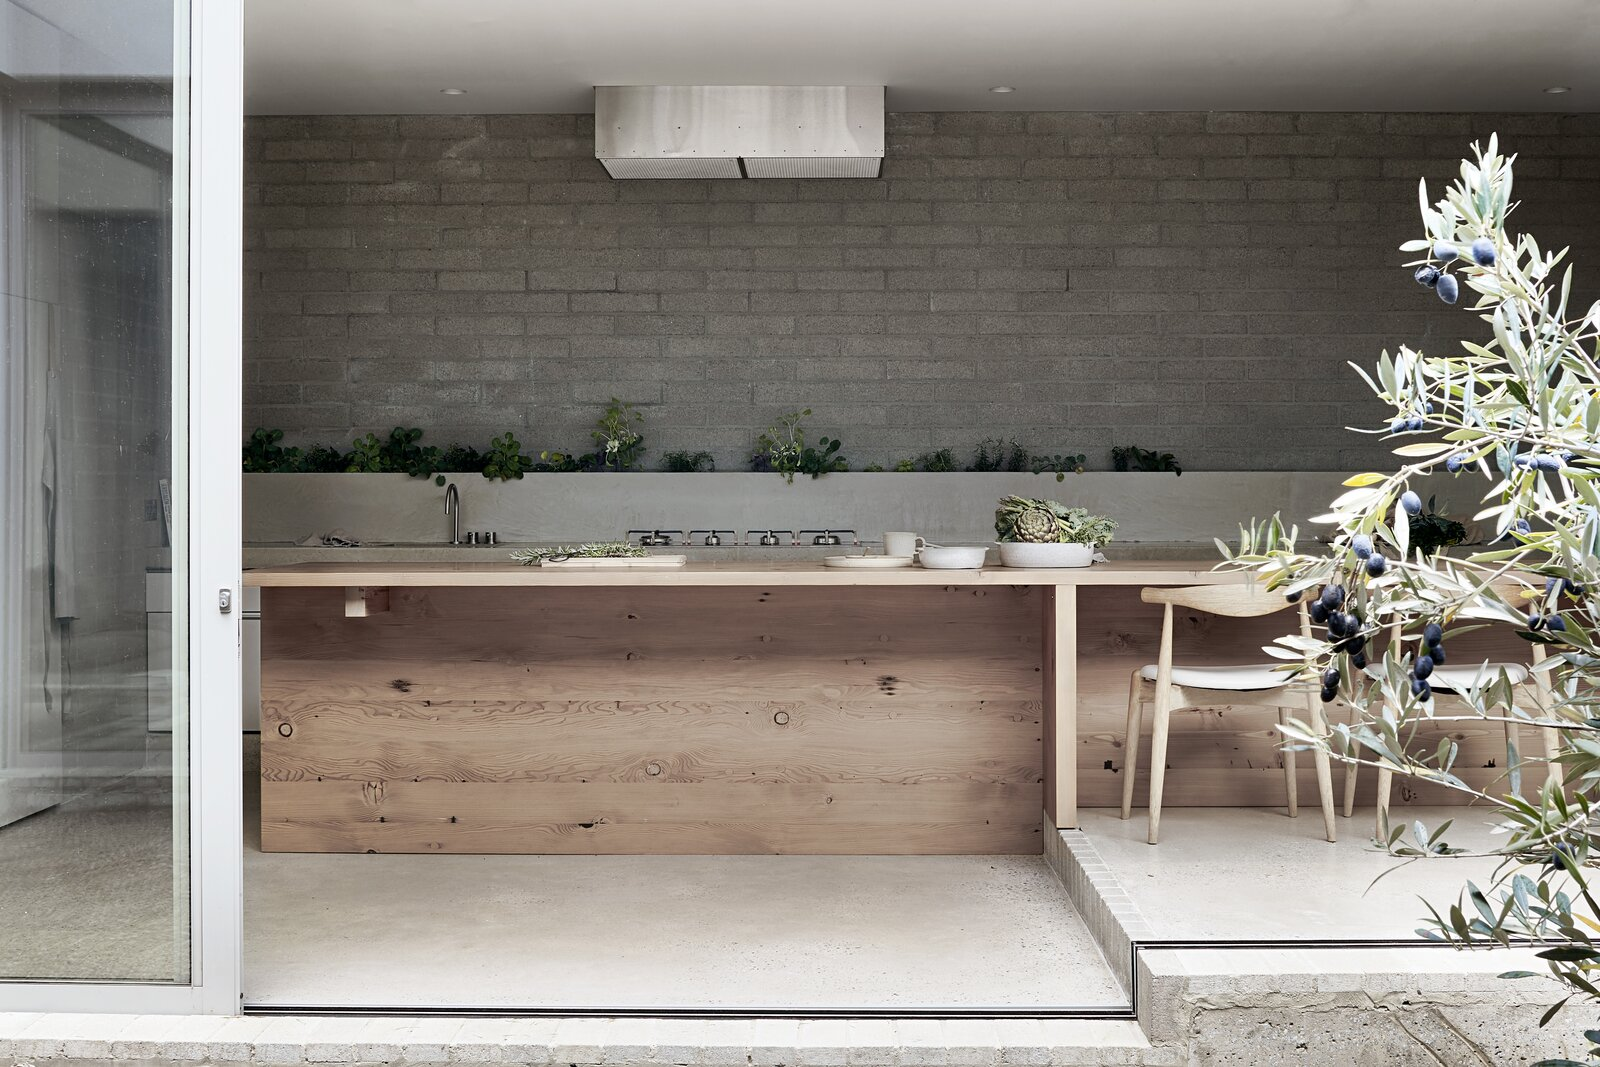 Kitchen, Concrete, Recessed, Concrete, Cooktops, Ceiling, Brick, Range, and Range Hood  Kitchen Concrete Cooktops Photos from A Concrete House Is Softened by an Airy Internal Courtyard, Complete With an Olive Grove